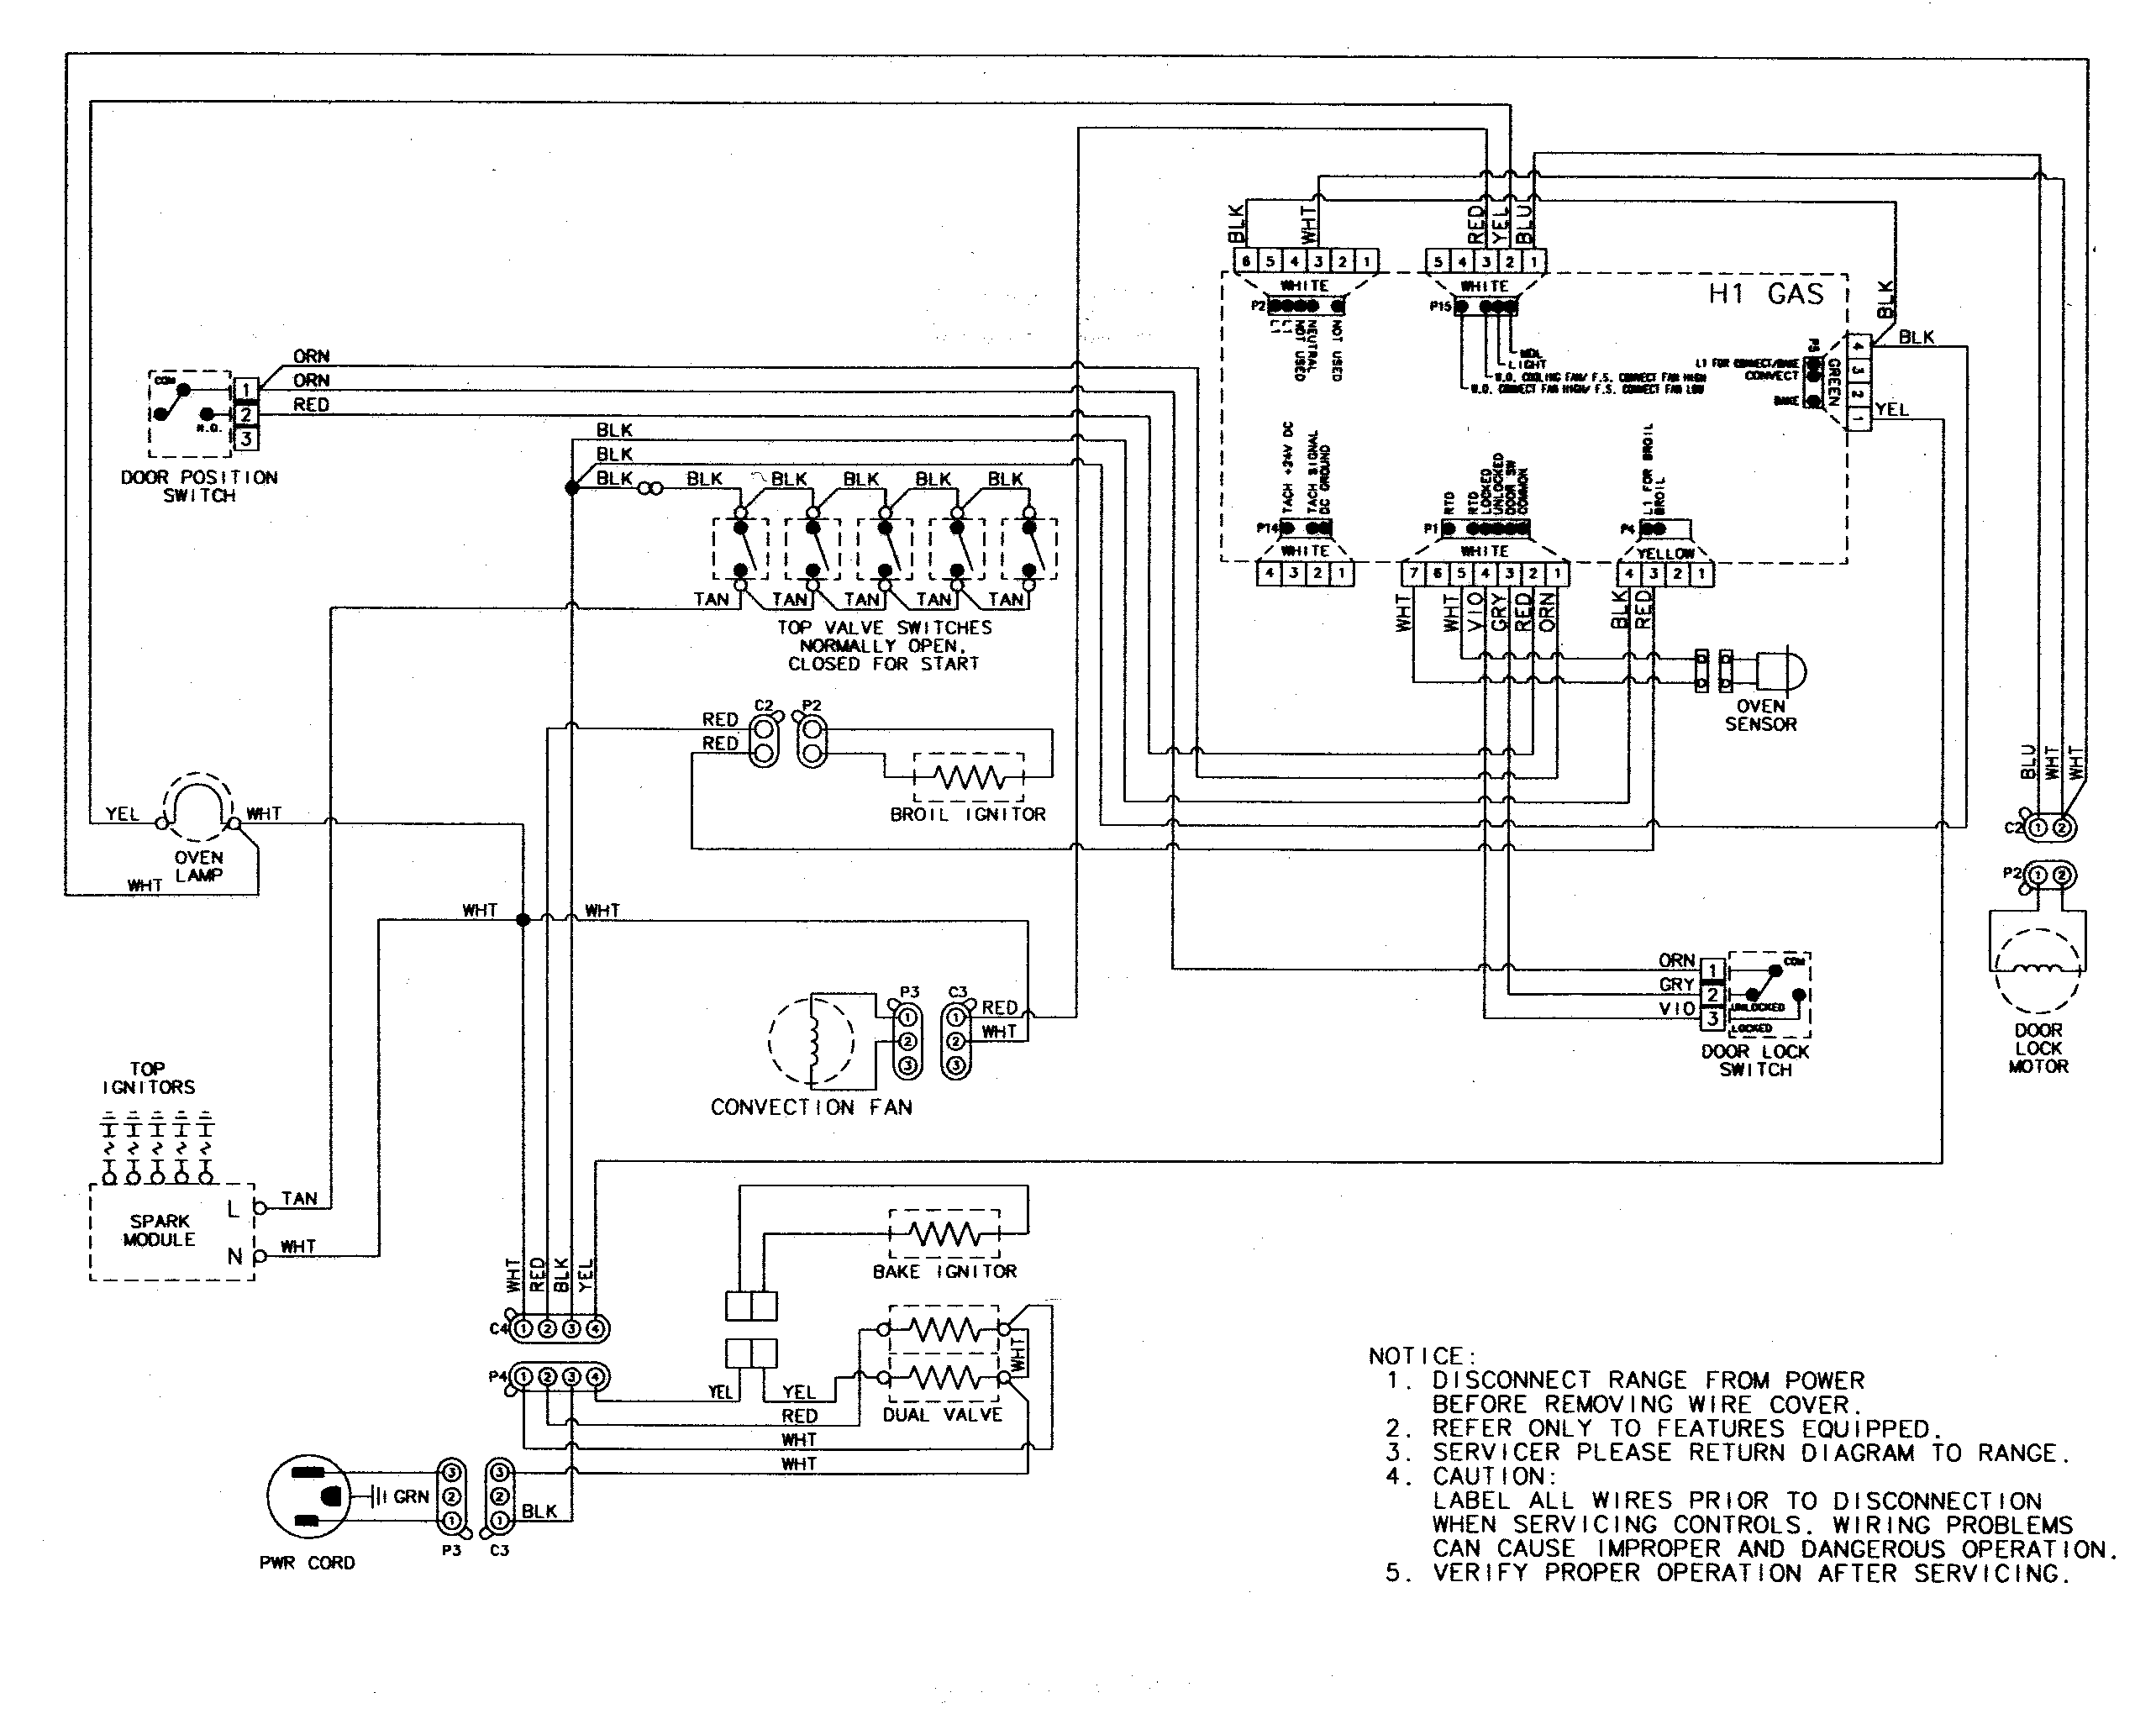 Amana Gas Dryer Parts Diagram: Amana AGR5835QDQ Freestanding Gas Range Timer - Stove Clocks and rh:appliancetimers.com,Design